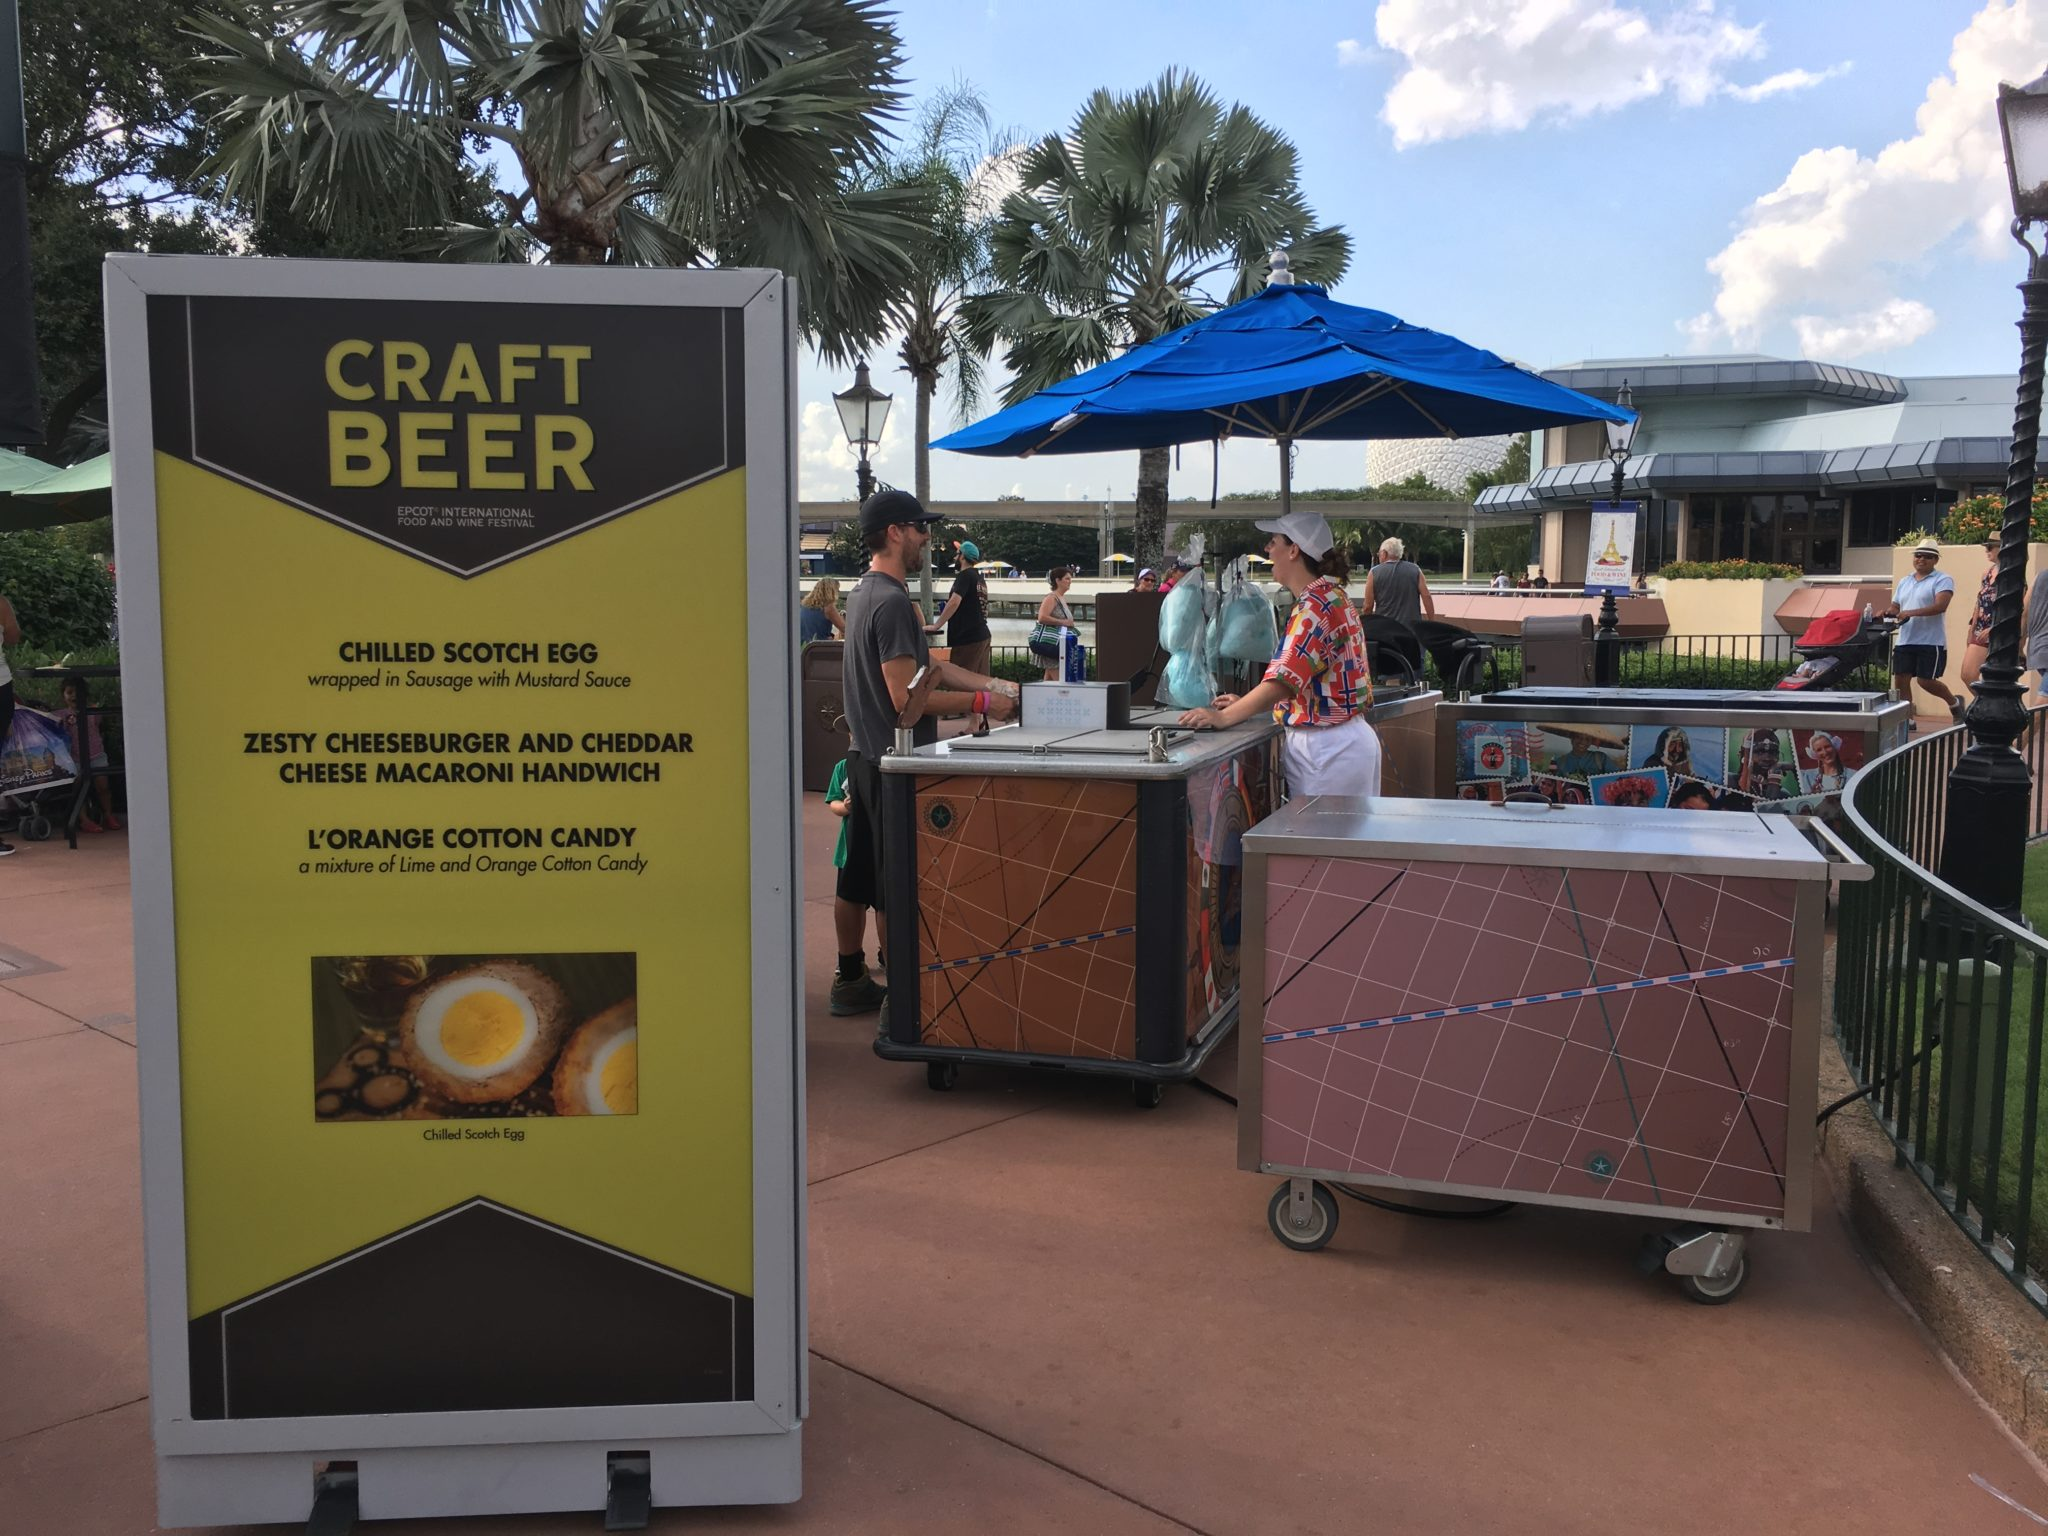 Here is everything you need to know before you go to Disney World's 2017 International Food & Wine Festival, which is a food lover's paradise.